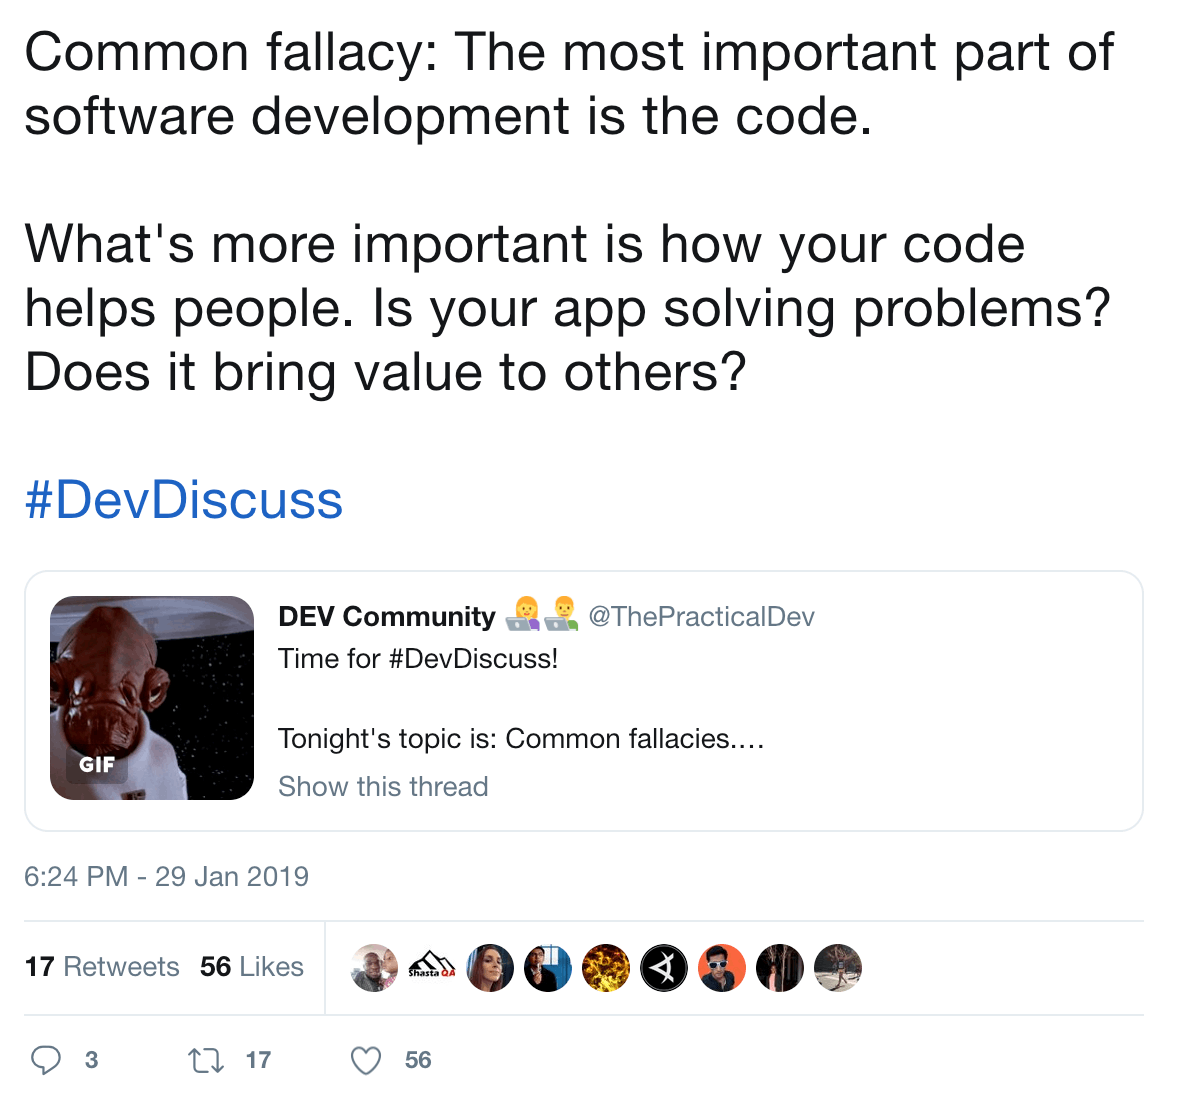 View tweet thread: Common fallacy: The most important part of software development is the code. What's more important is how your code helps people. Is your app solving problems? Does it bring value to others?